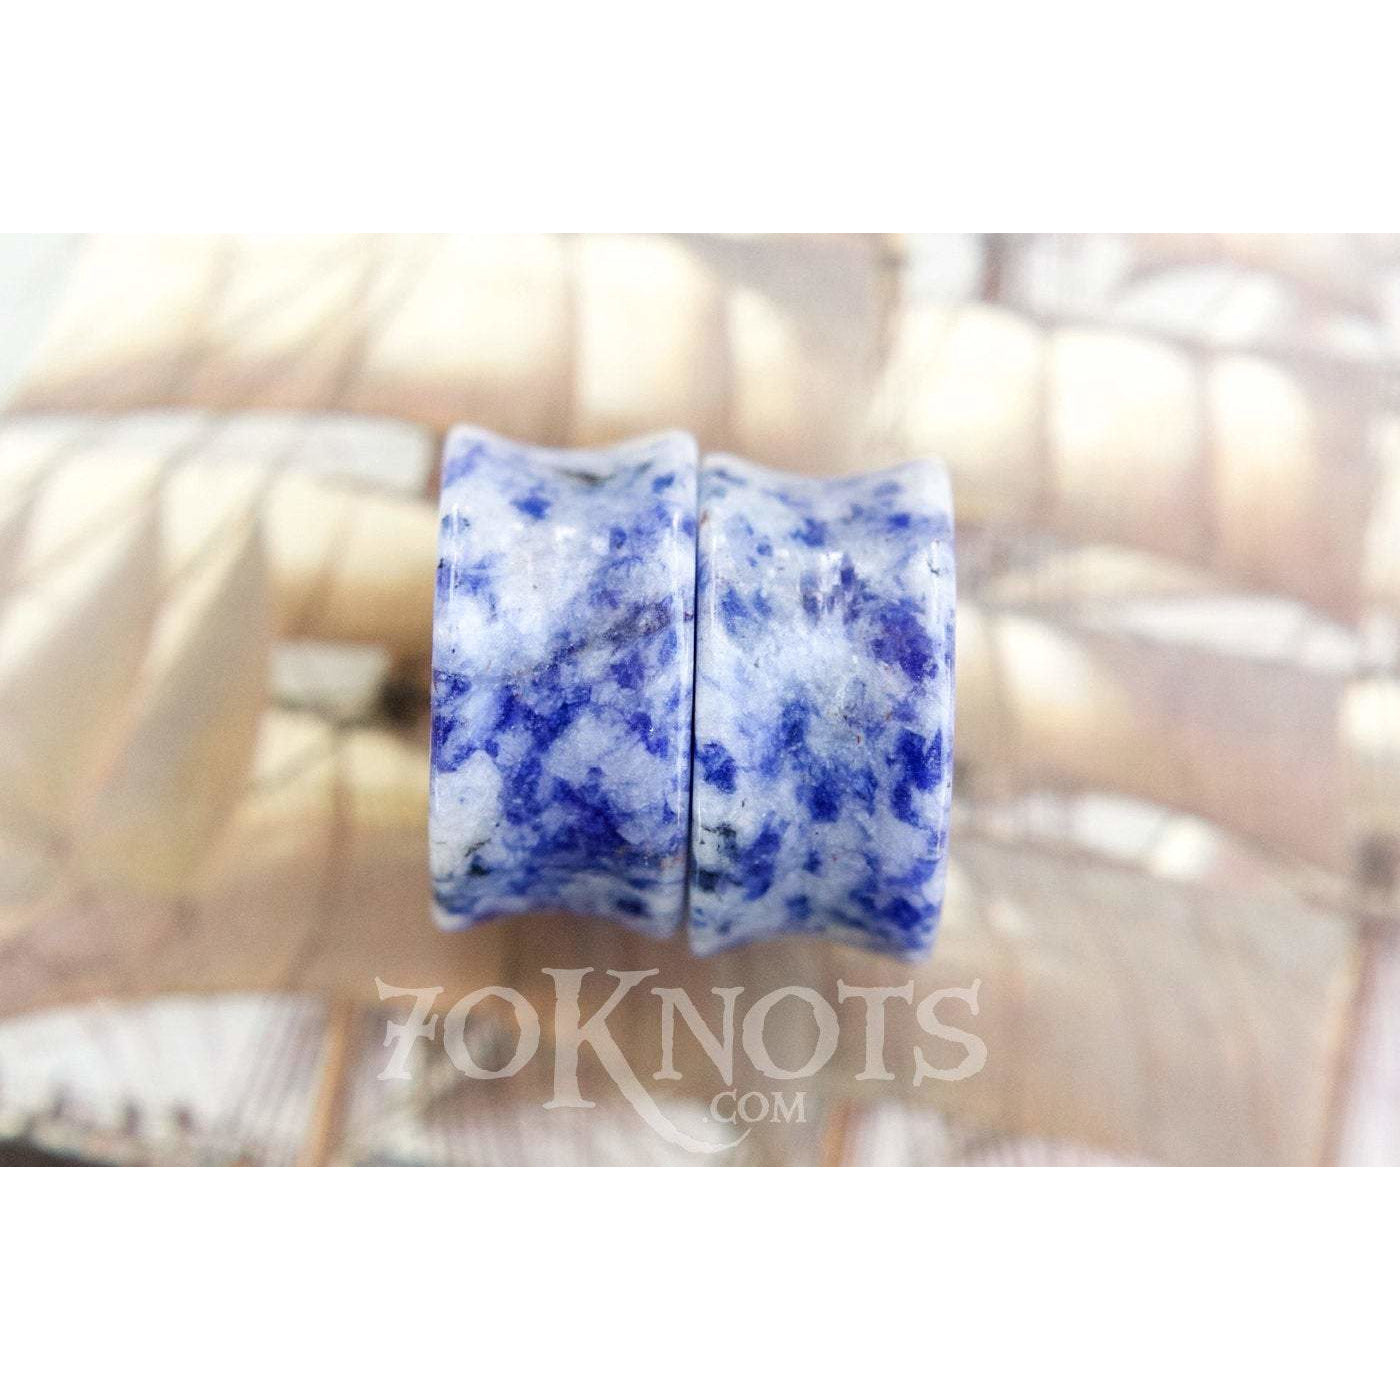 Brazilian Sodalite Double Flared Plugs, Pair - 70 Knots